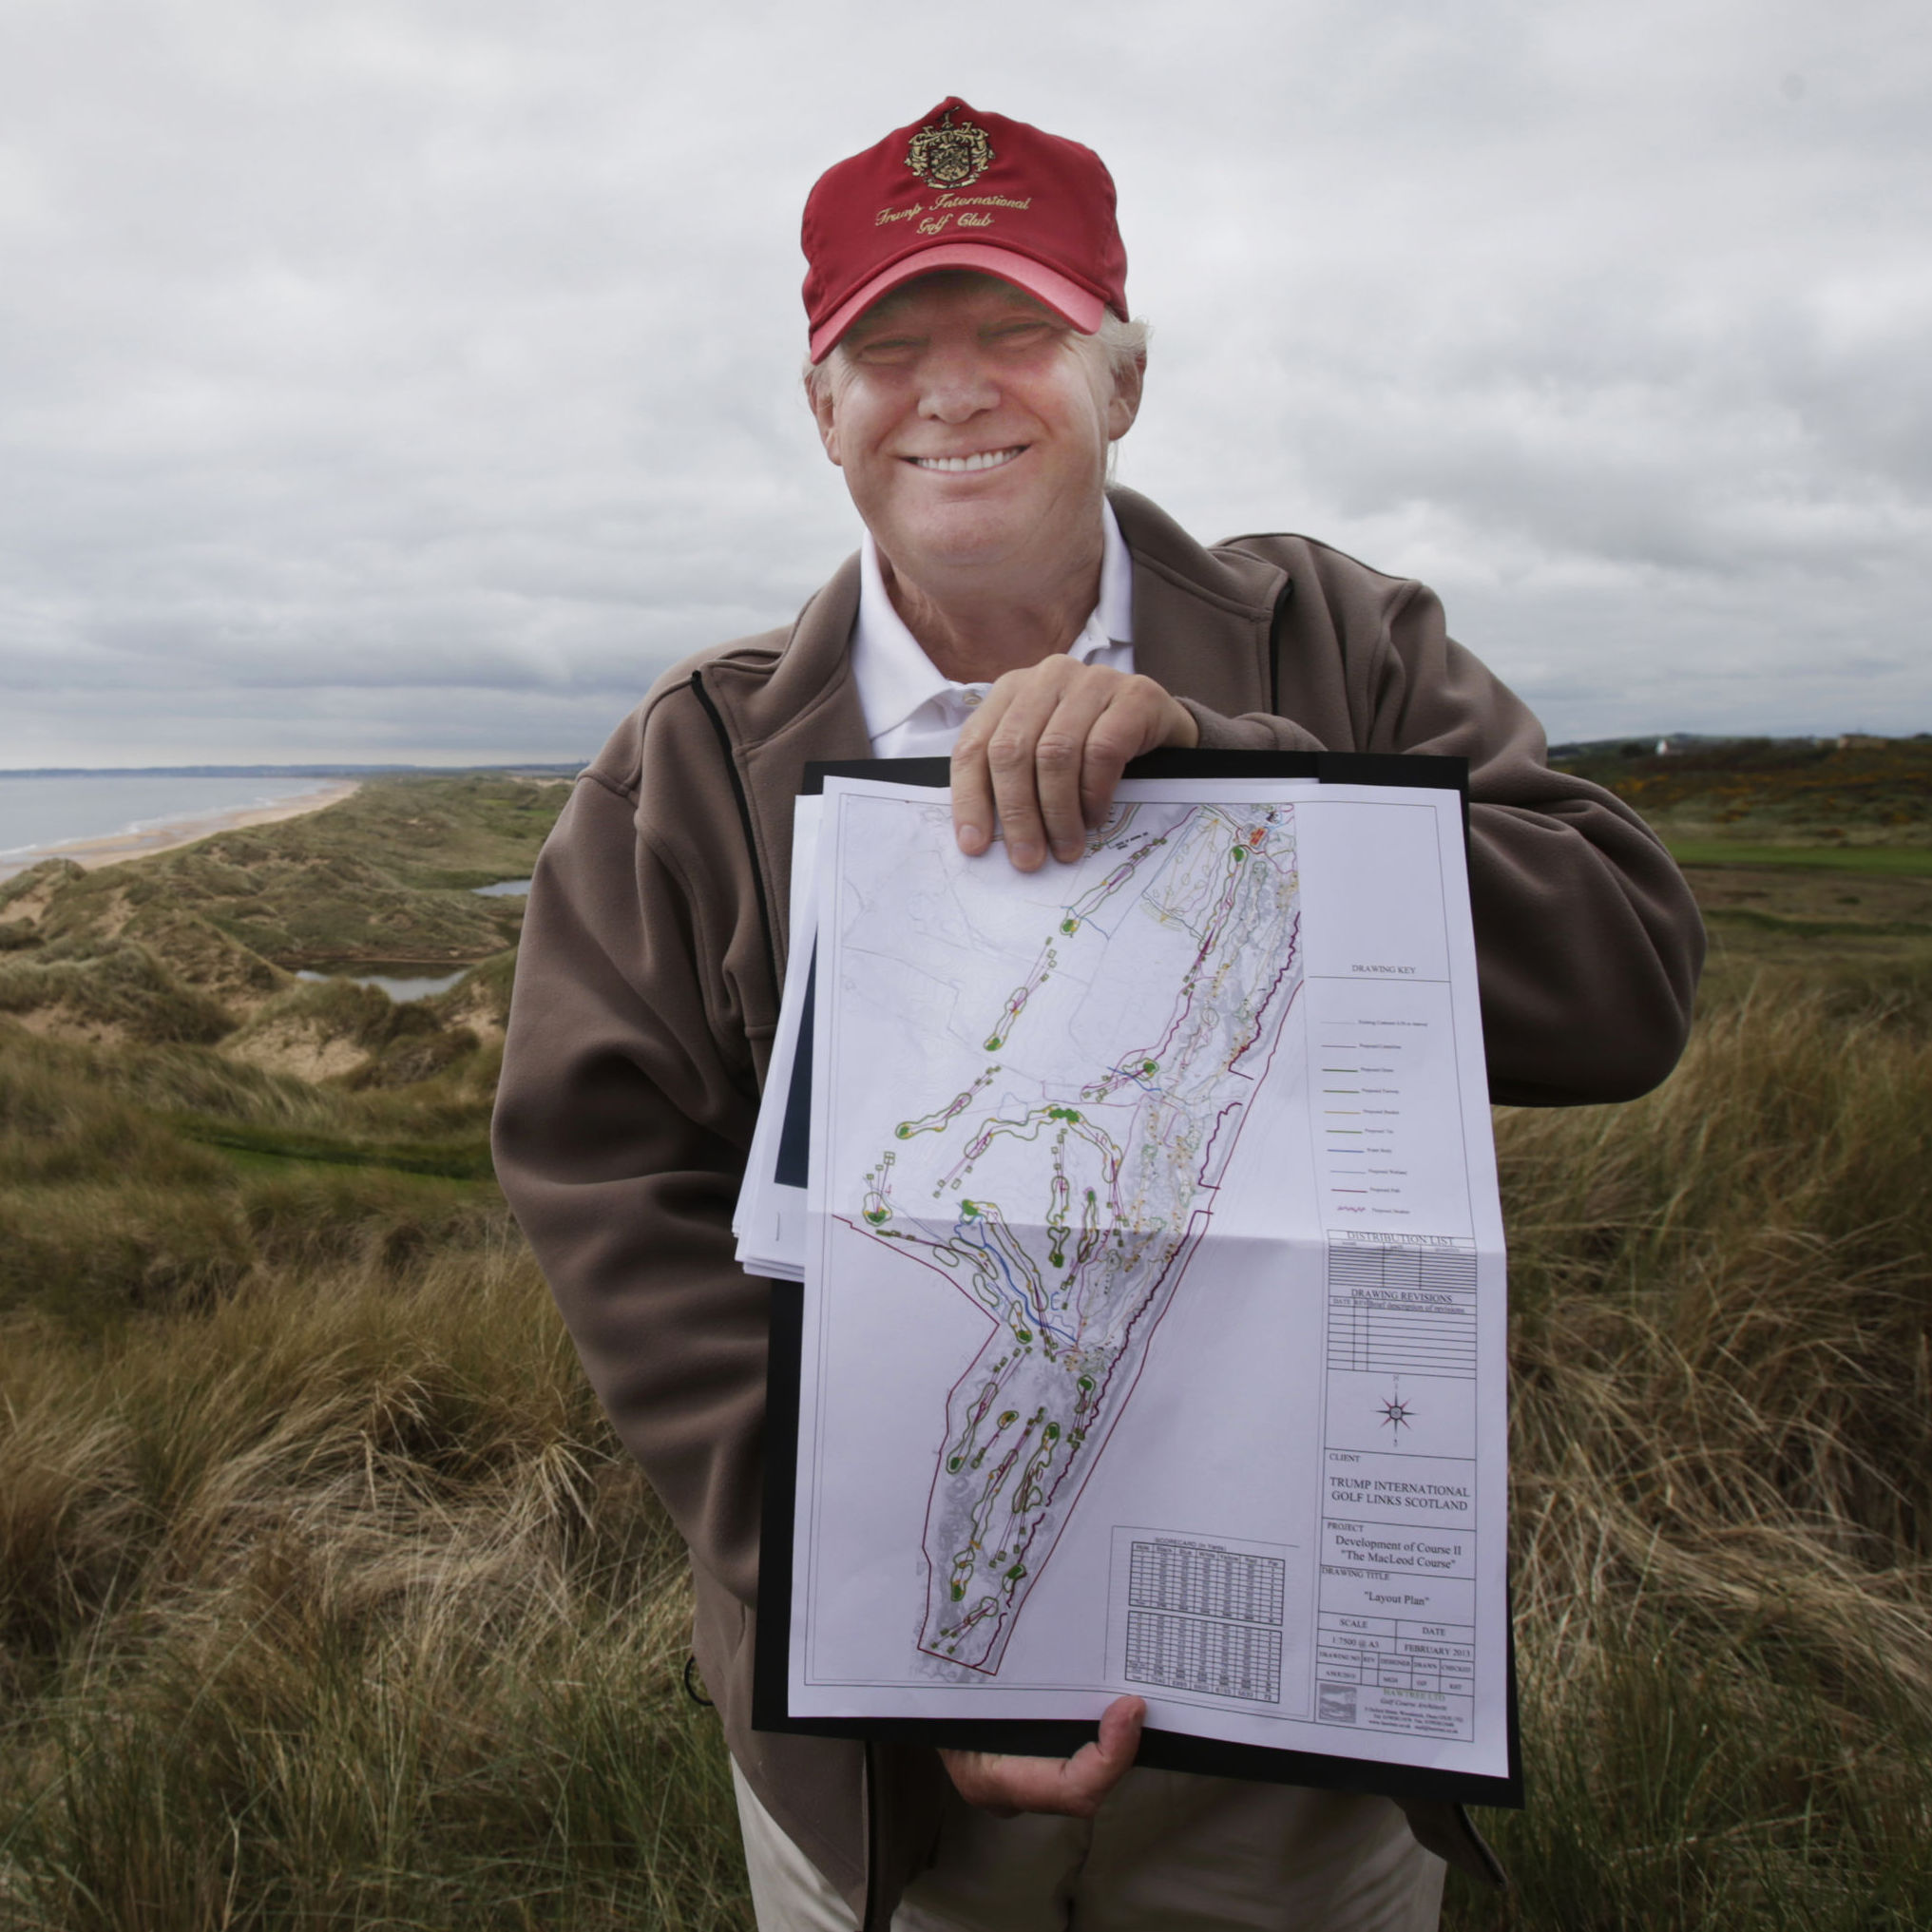 Trump holds the plans for the MacLeod Course, his second Scottish golf course, during a visit to the Trump International Golf Links, on June 6.